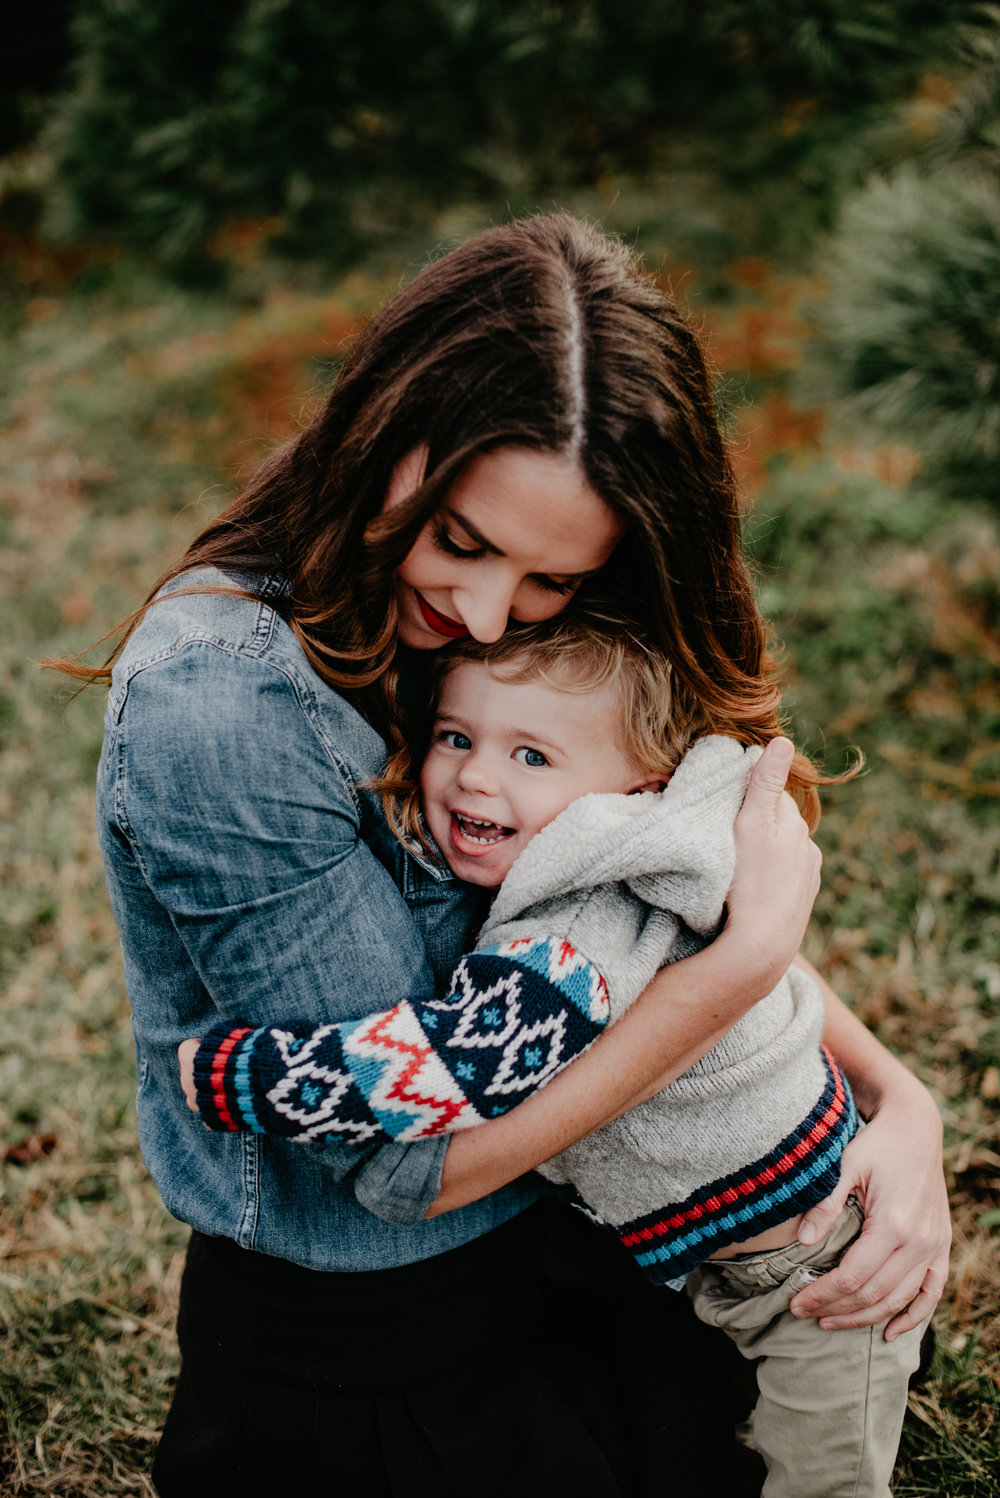 Lifestyle - Lifestyle sessions are a great way to capture the life you're living, whether you're expecting a child, graduating, or just adopted a puppy. If it's happening in your life, I believe it's worth capturing!Lifestyle sessions begin at $275